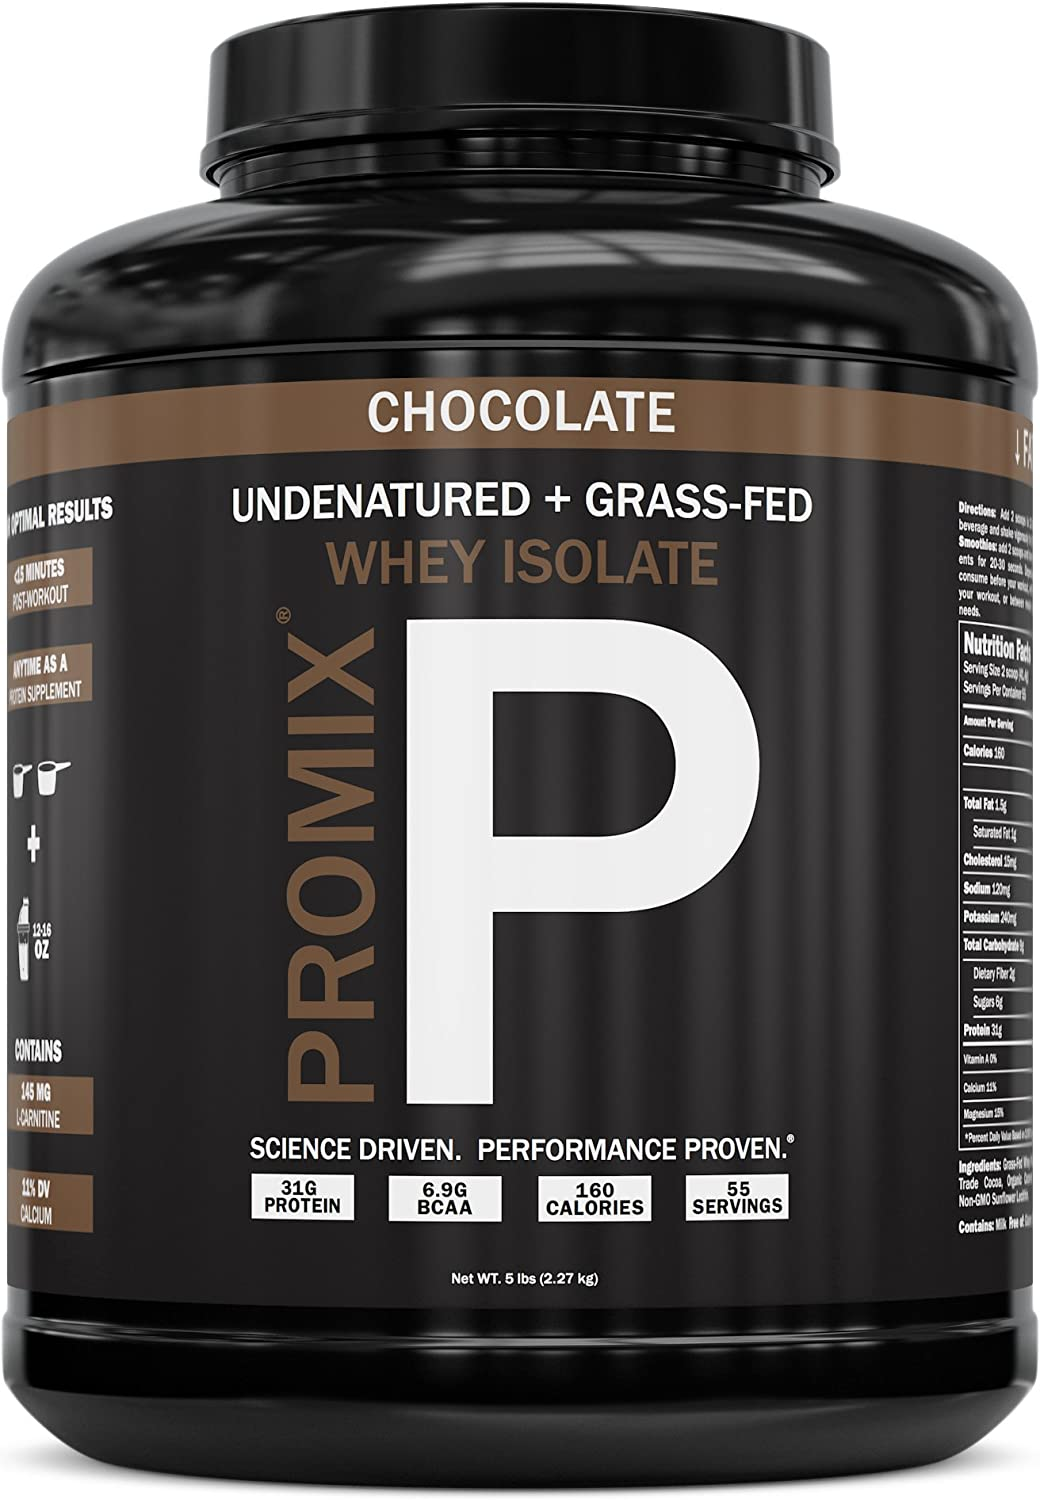 Native Grass Fed Whey Protein Isolate 100 Optimum All Natural Undenatured Non-GMO Gluten-Free Soy-Free Best for Fitness Nutrition Shakes Energy Smoothie Chocolate, 5LB